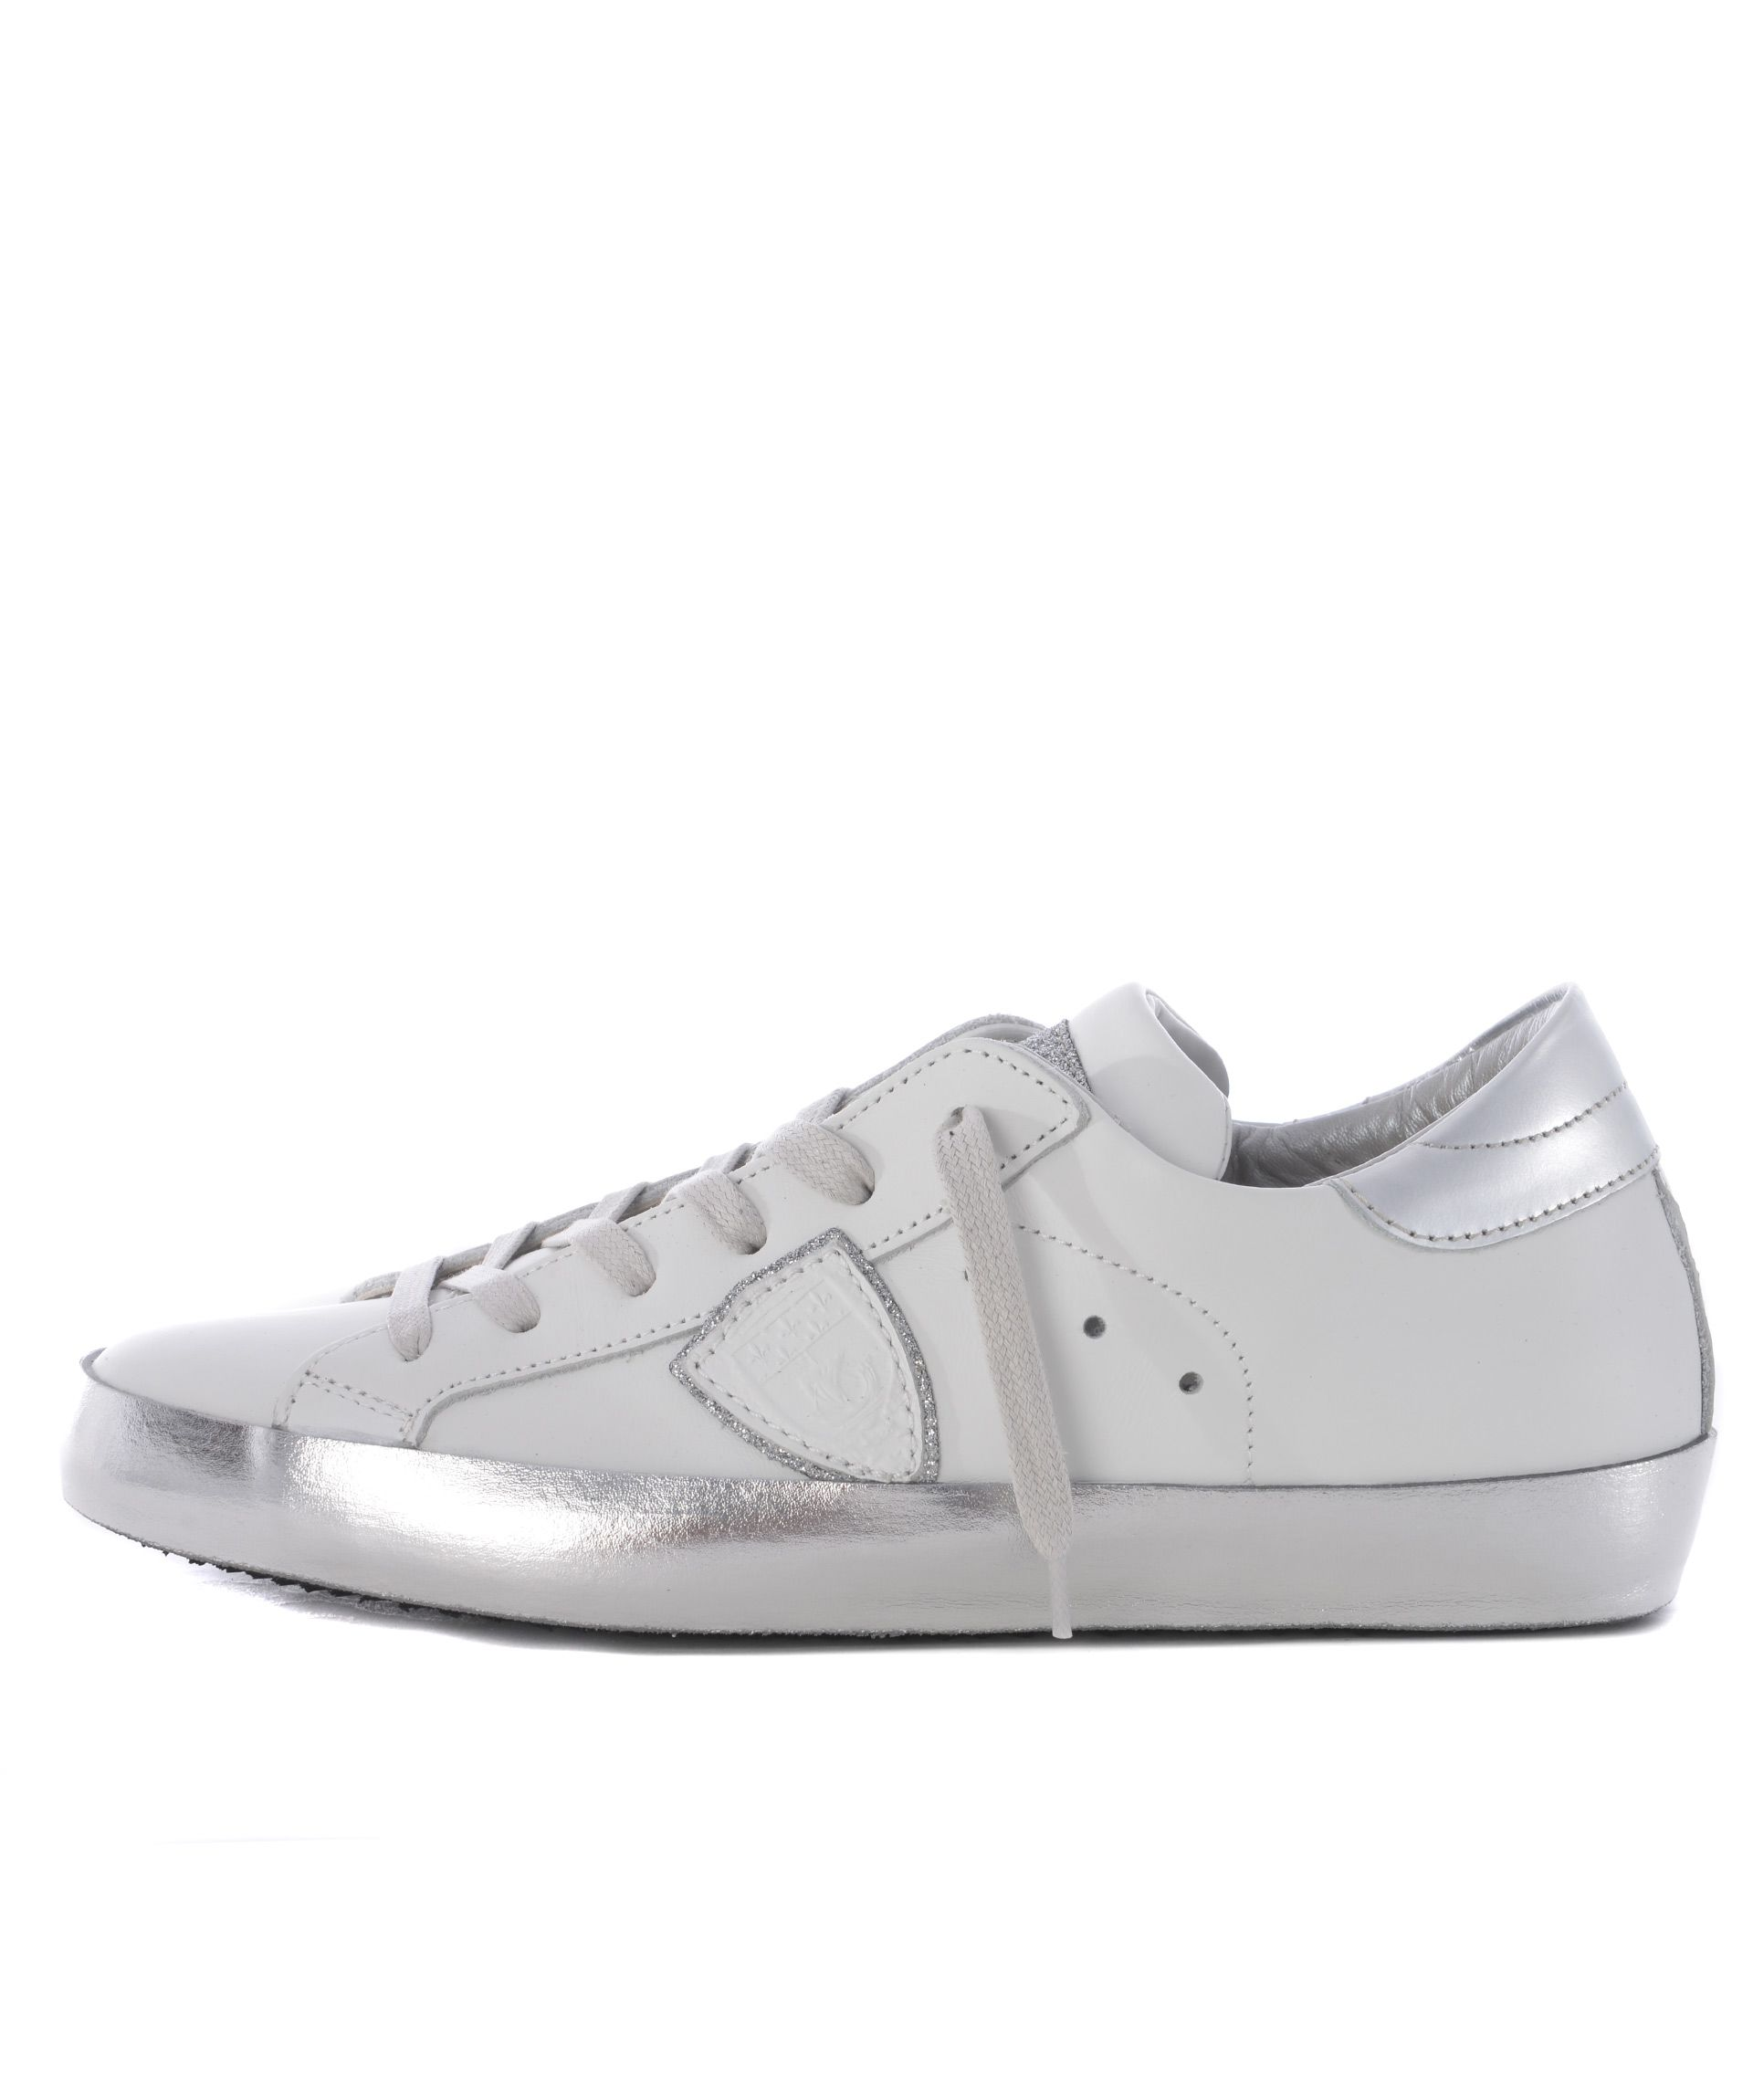 Philippe Model Metallic Detail Sneakers